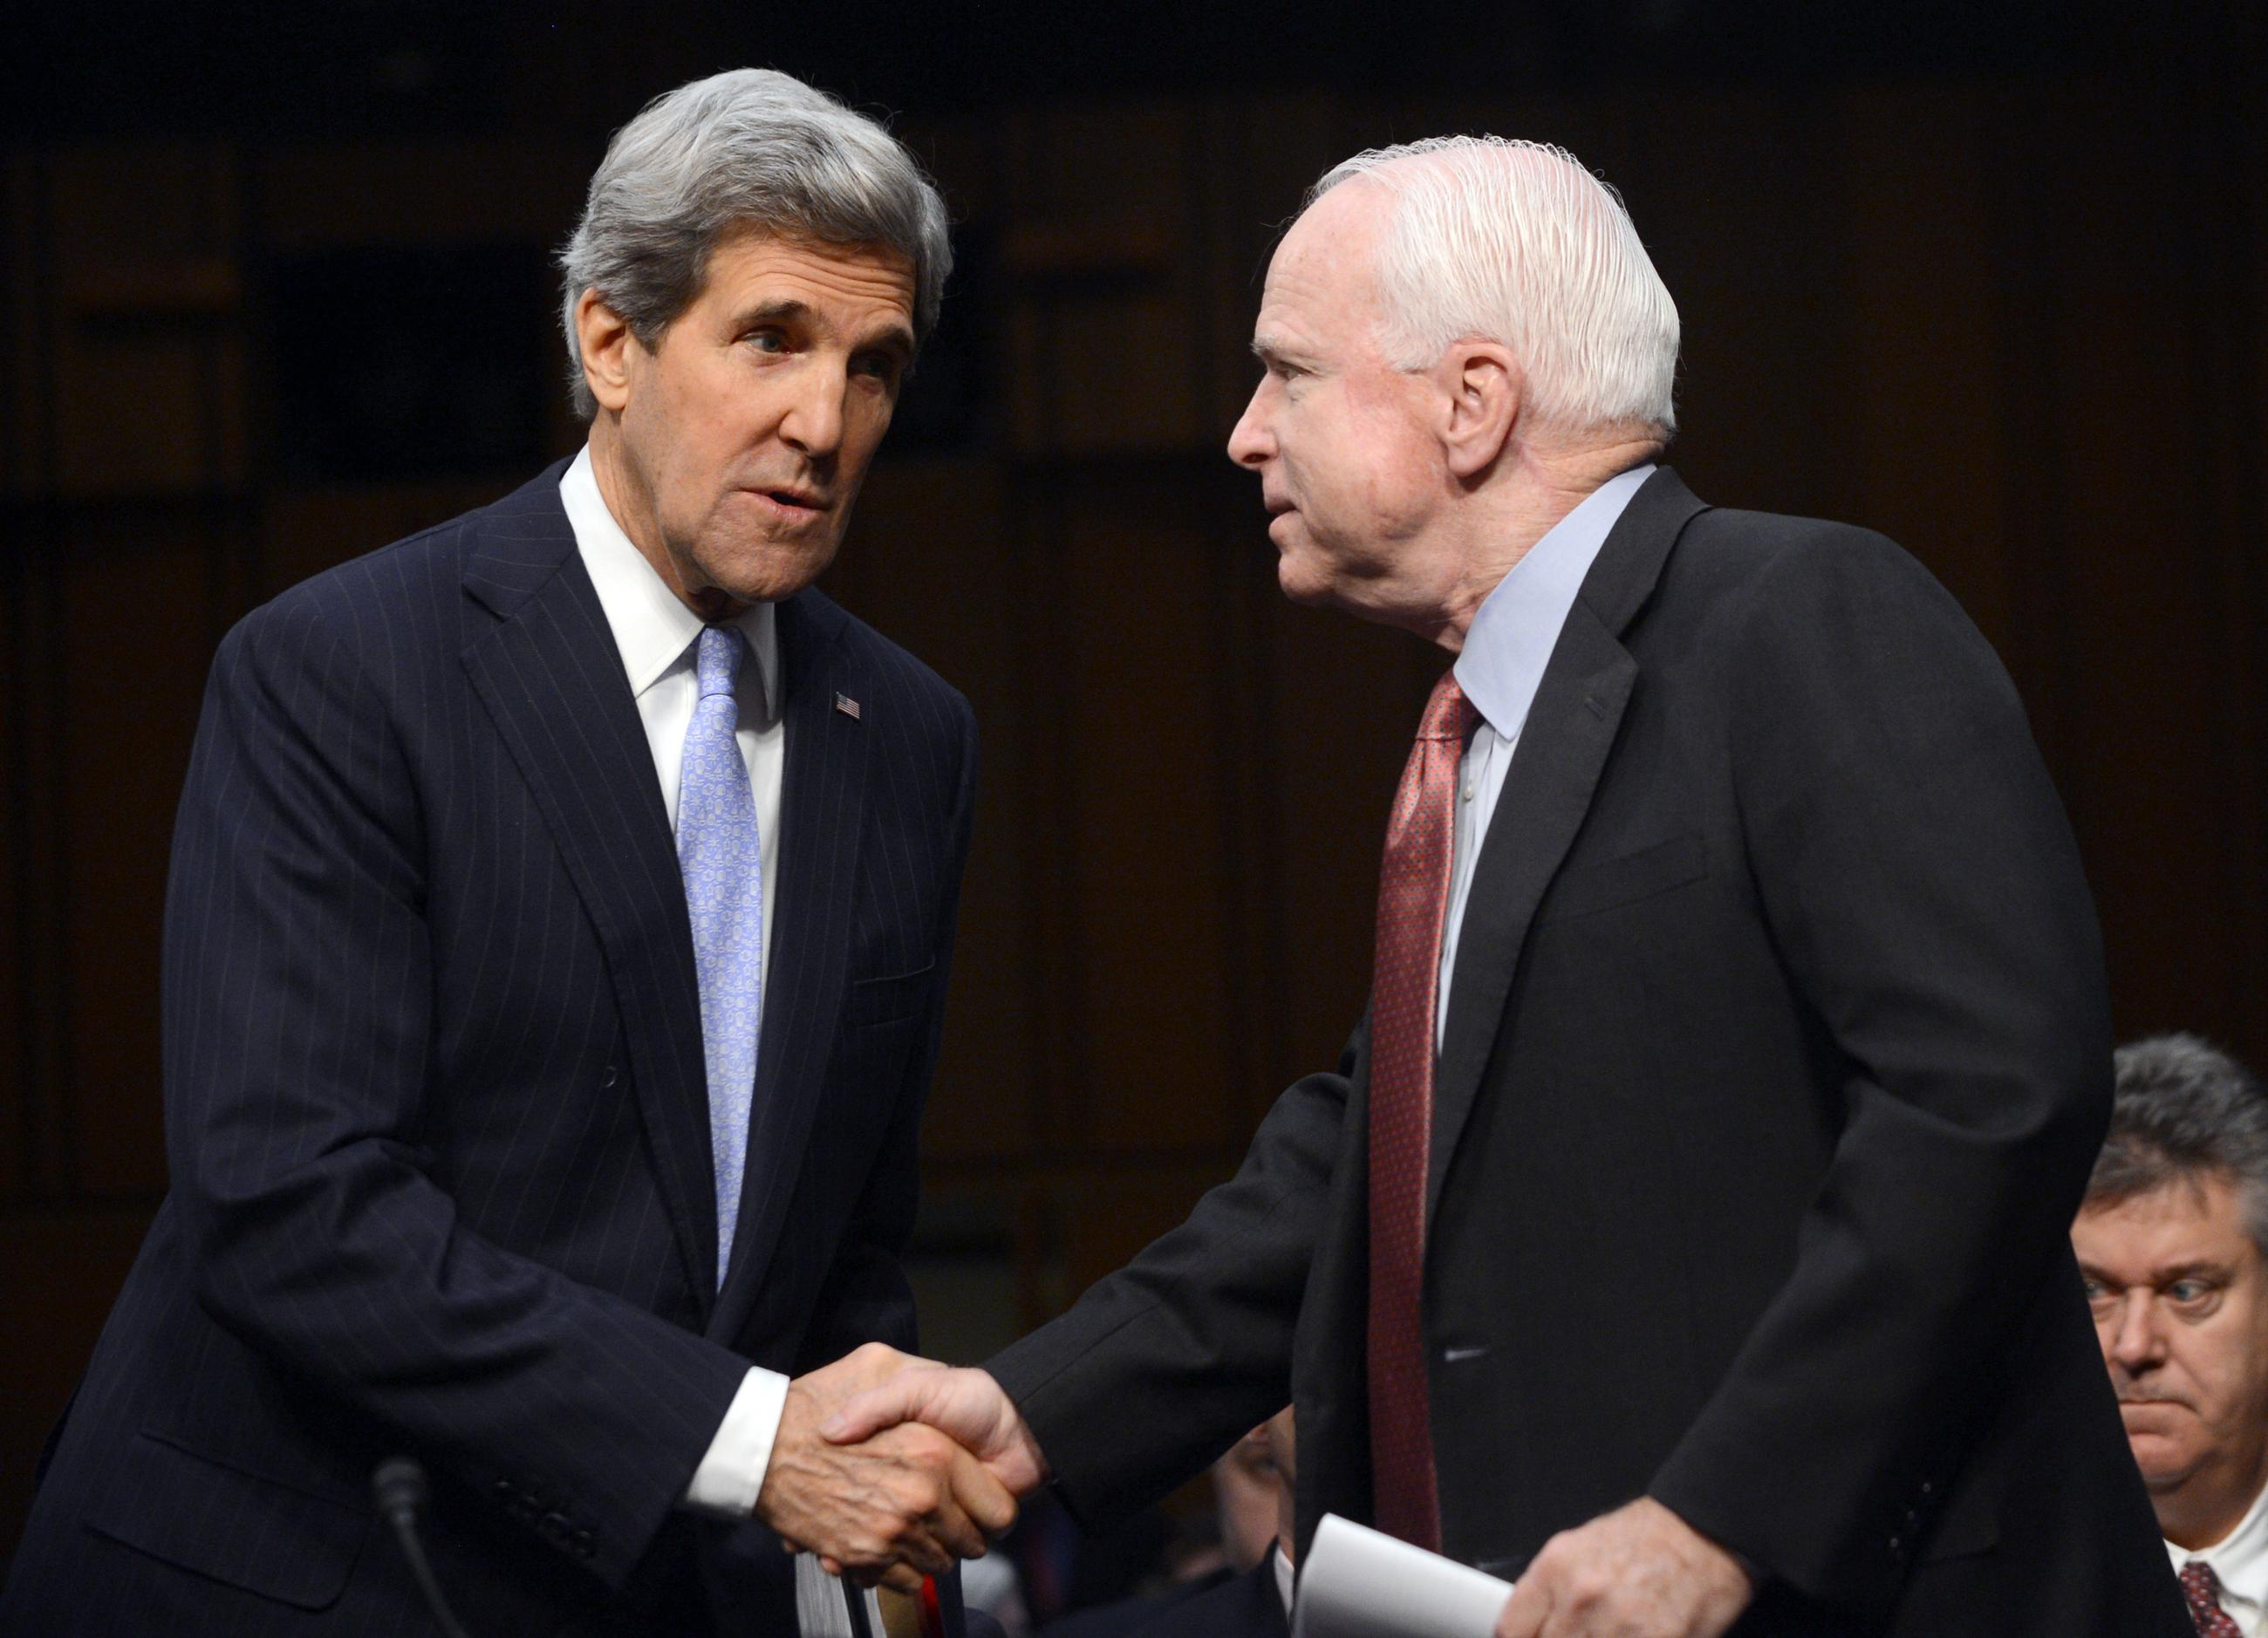 McCain Doesn't Think Kerry Should Be Focusing on Climate Change